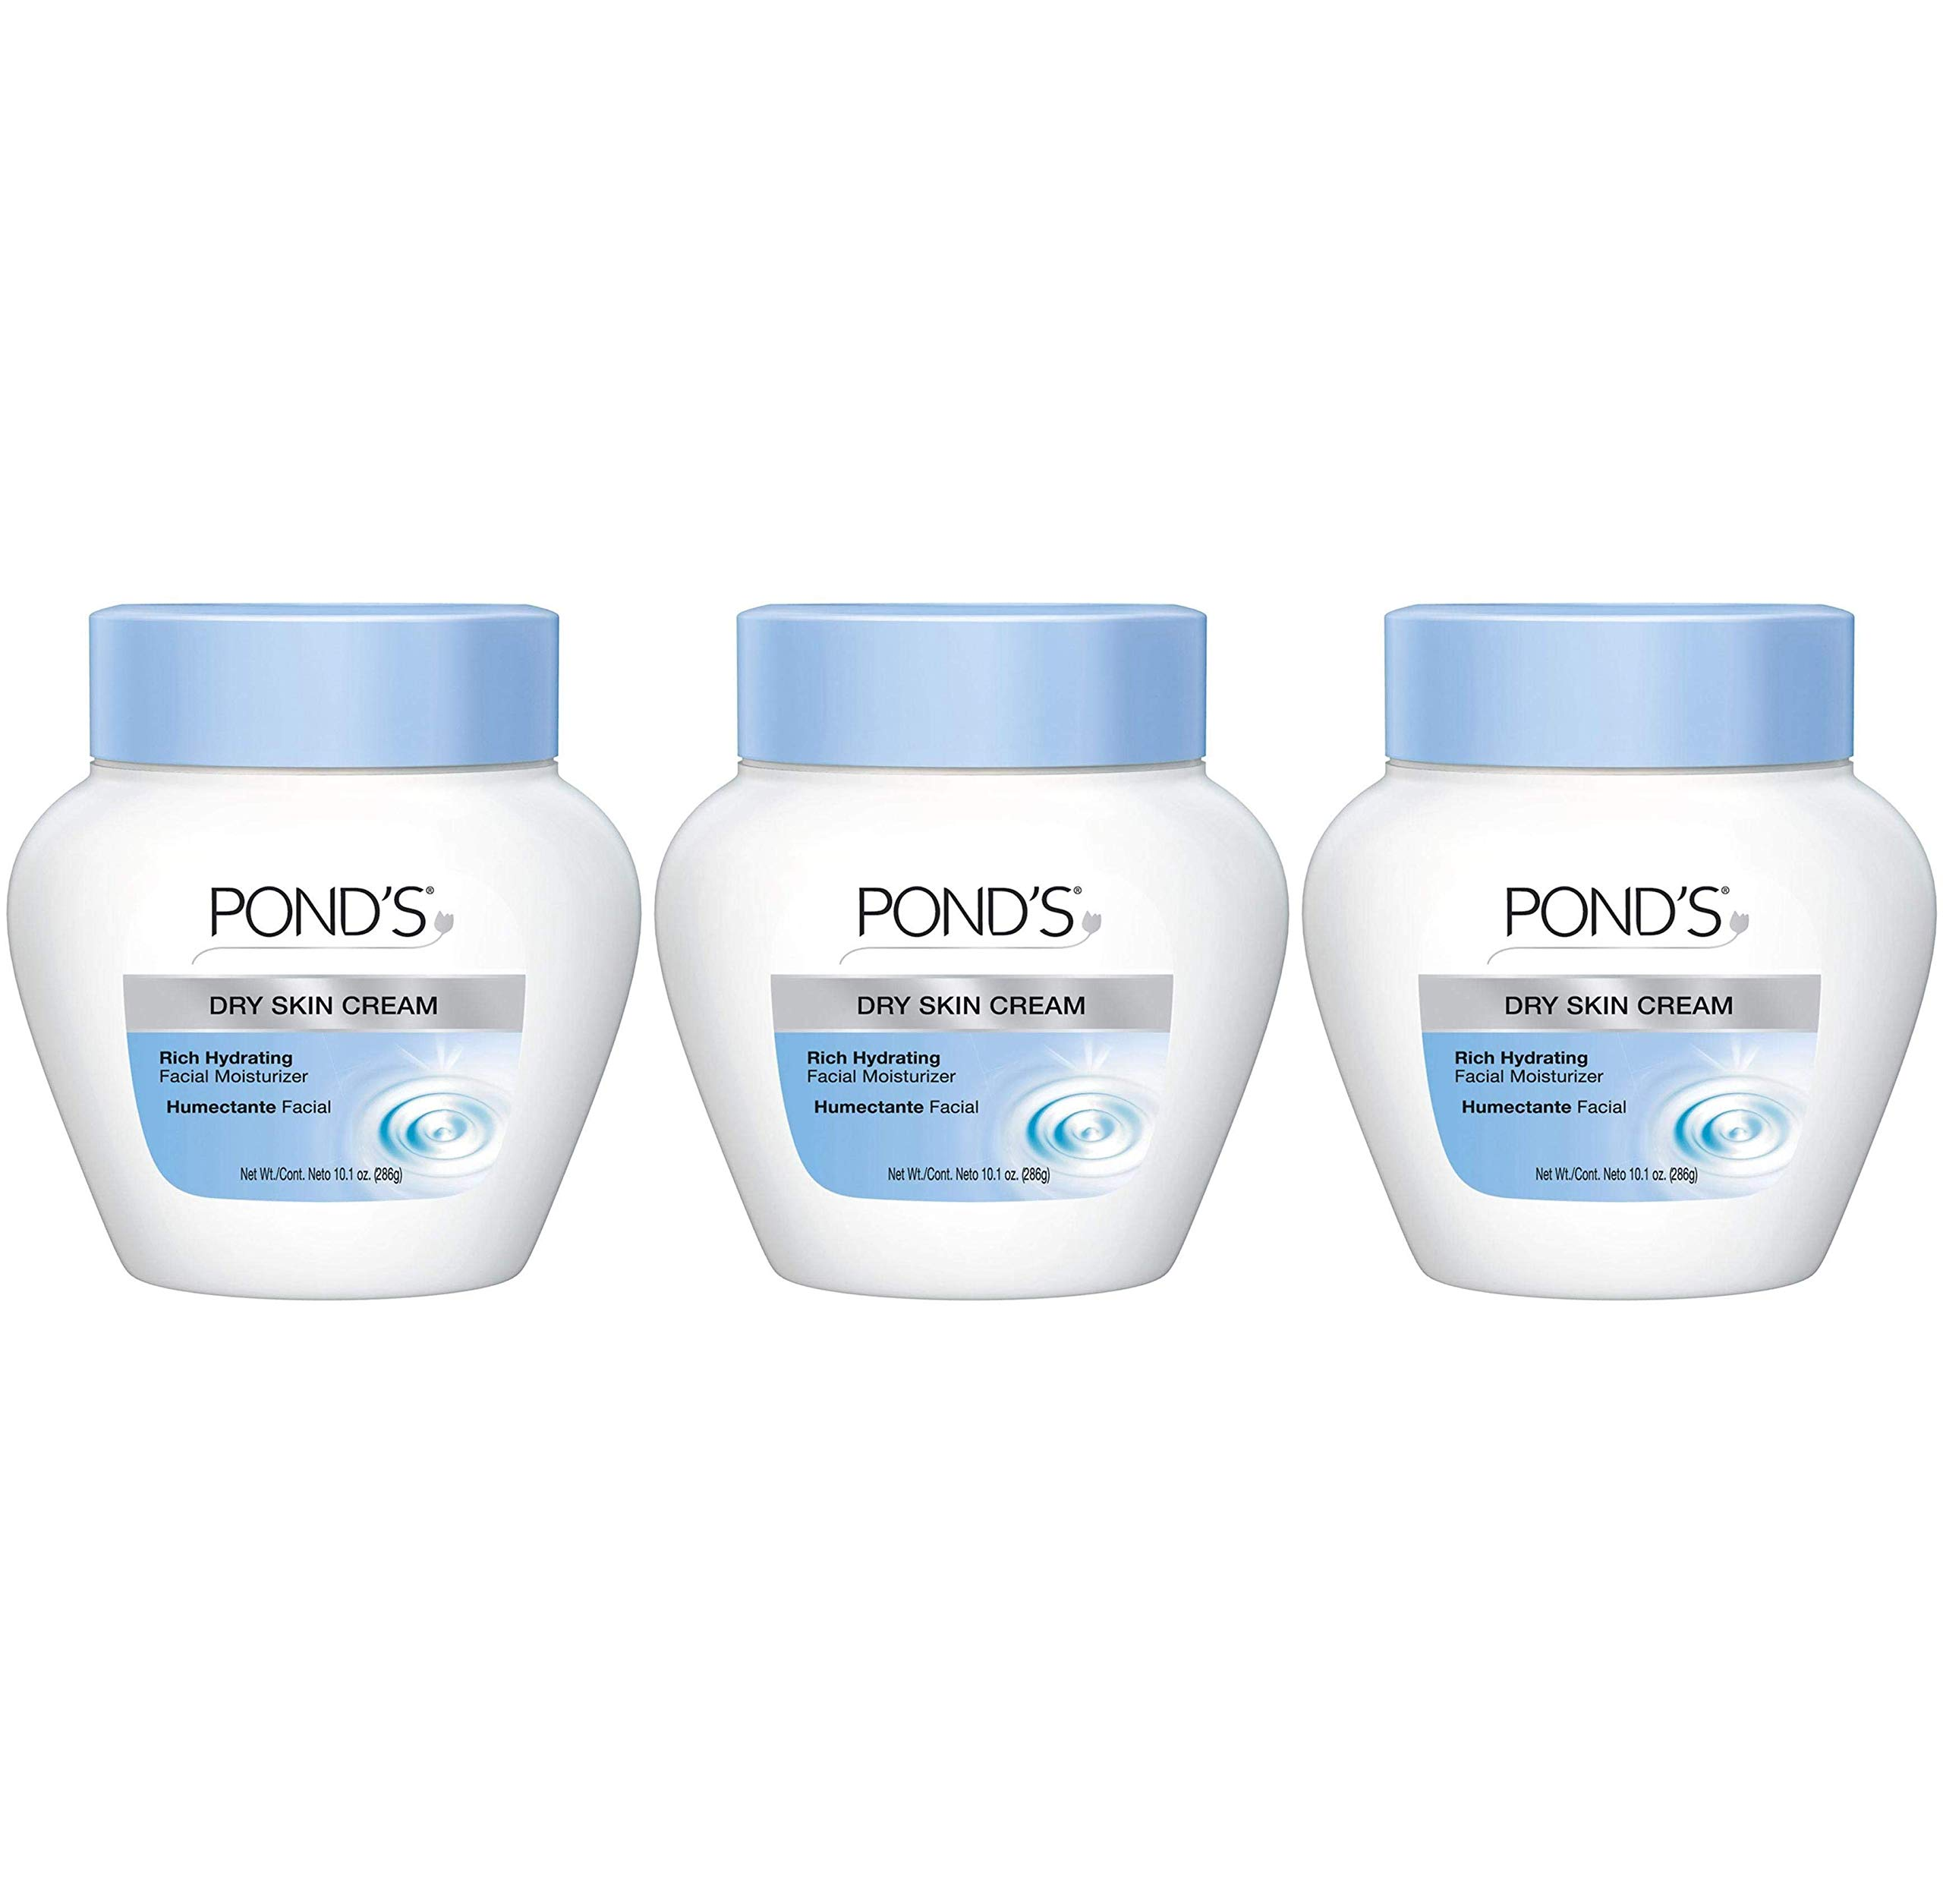 Pond's Extra Rich Dry Skin Cream - 10.1 oz - Caring Classic - Pack of 3 by Pond's